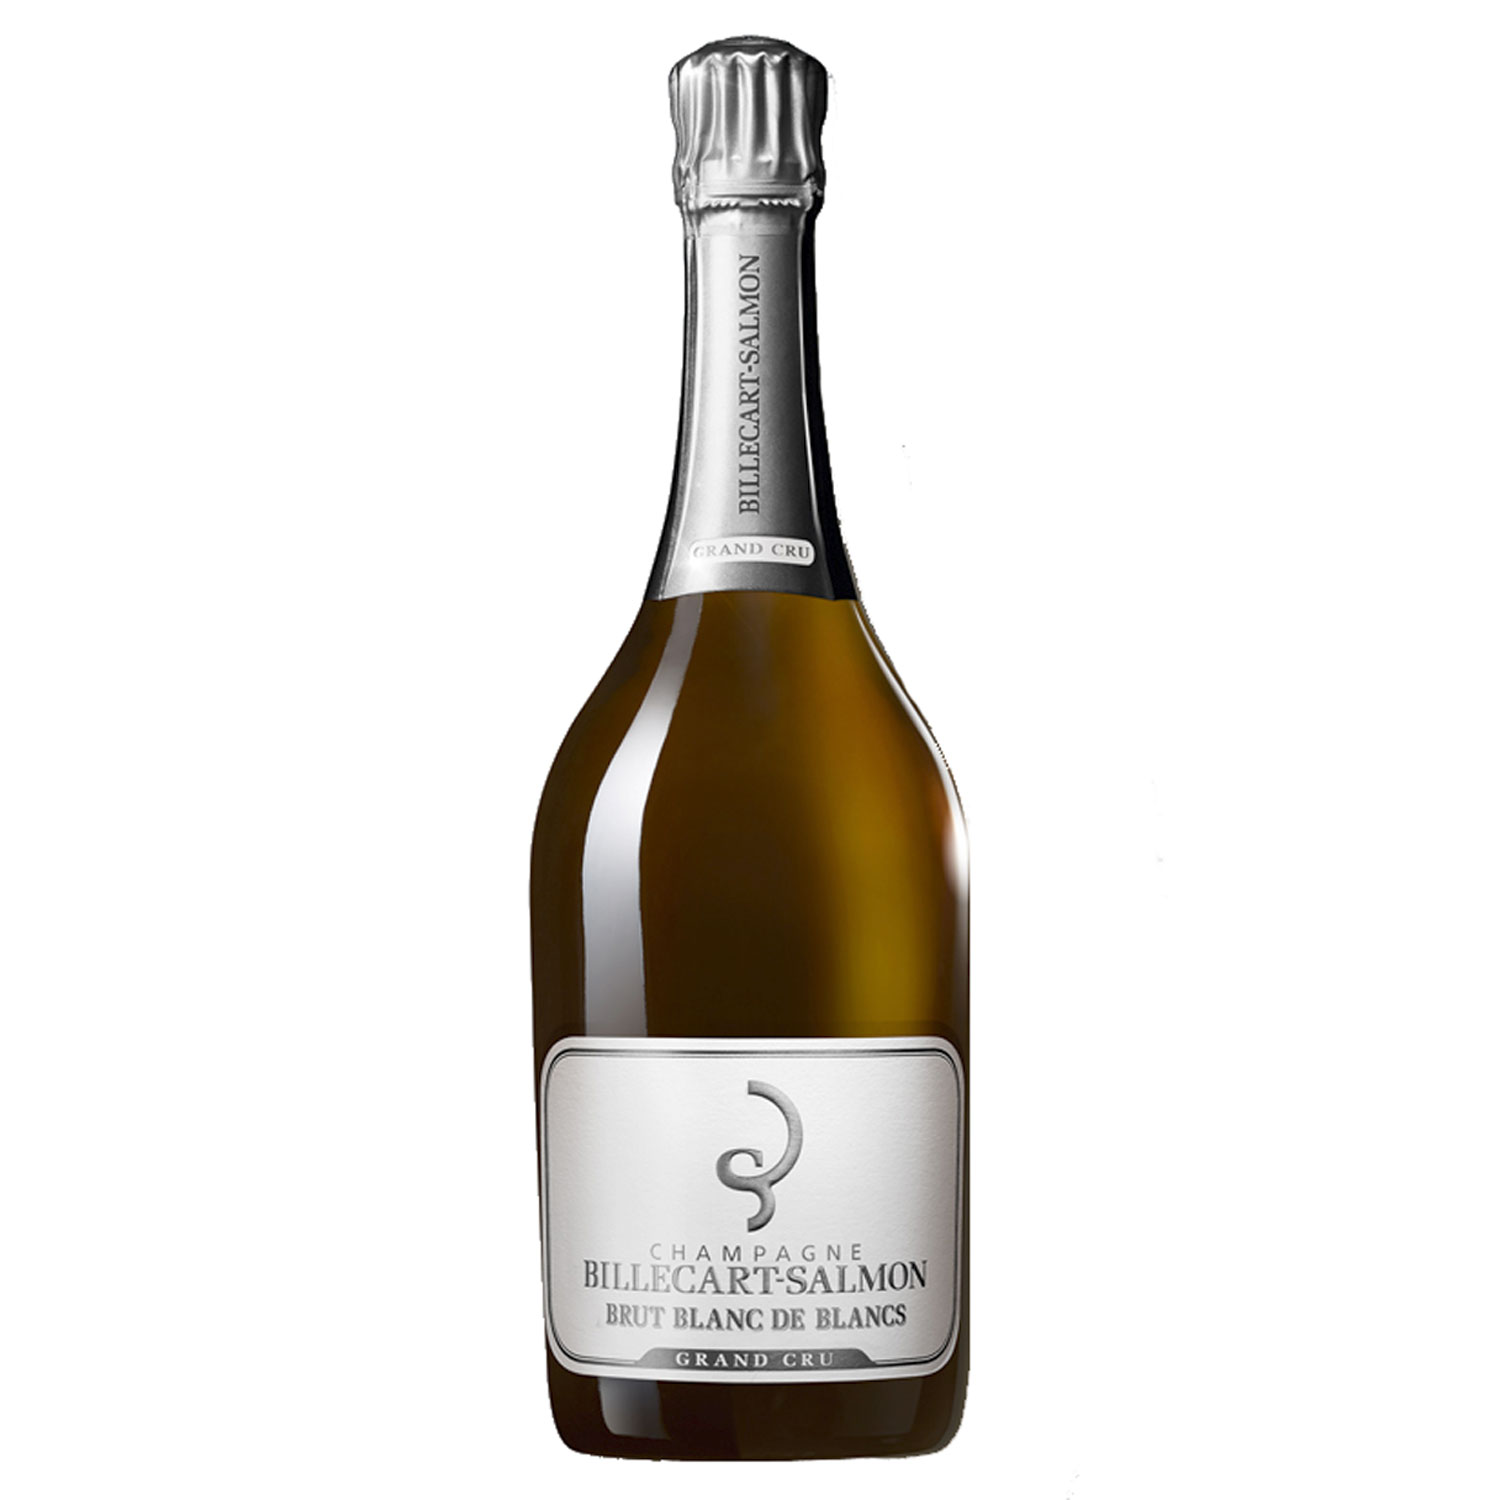 Champagne Billecart Salmon - Blanc de Blancs - Grand Cru